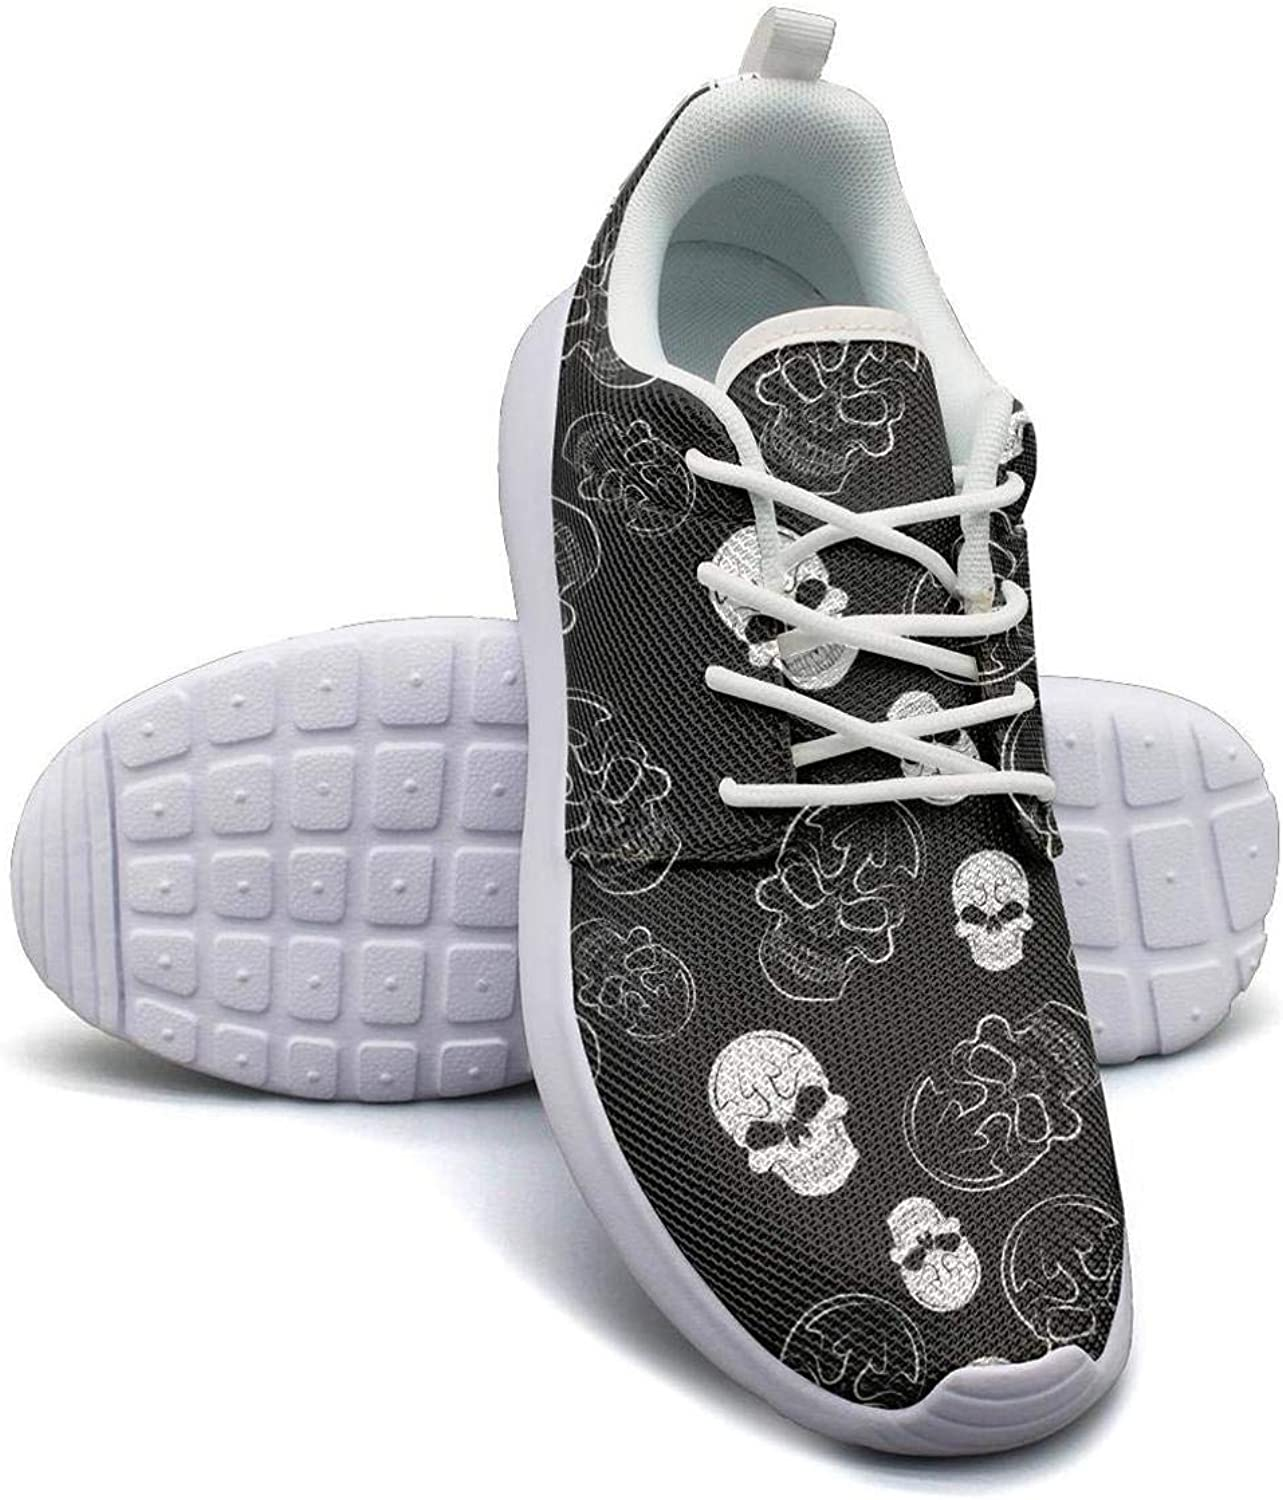 Hobart dfgrwe Black Skull Pattern Lady Flat Bottom Casual Shoes New Basketball Shoes